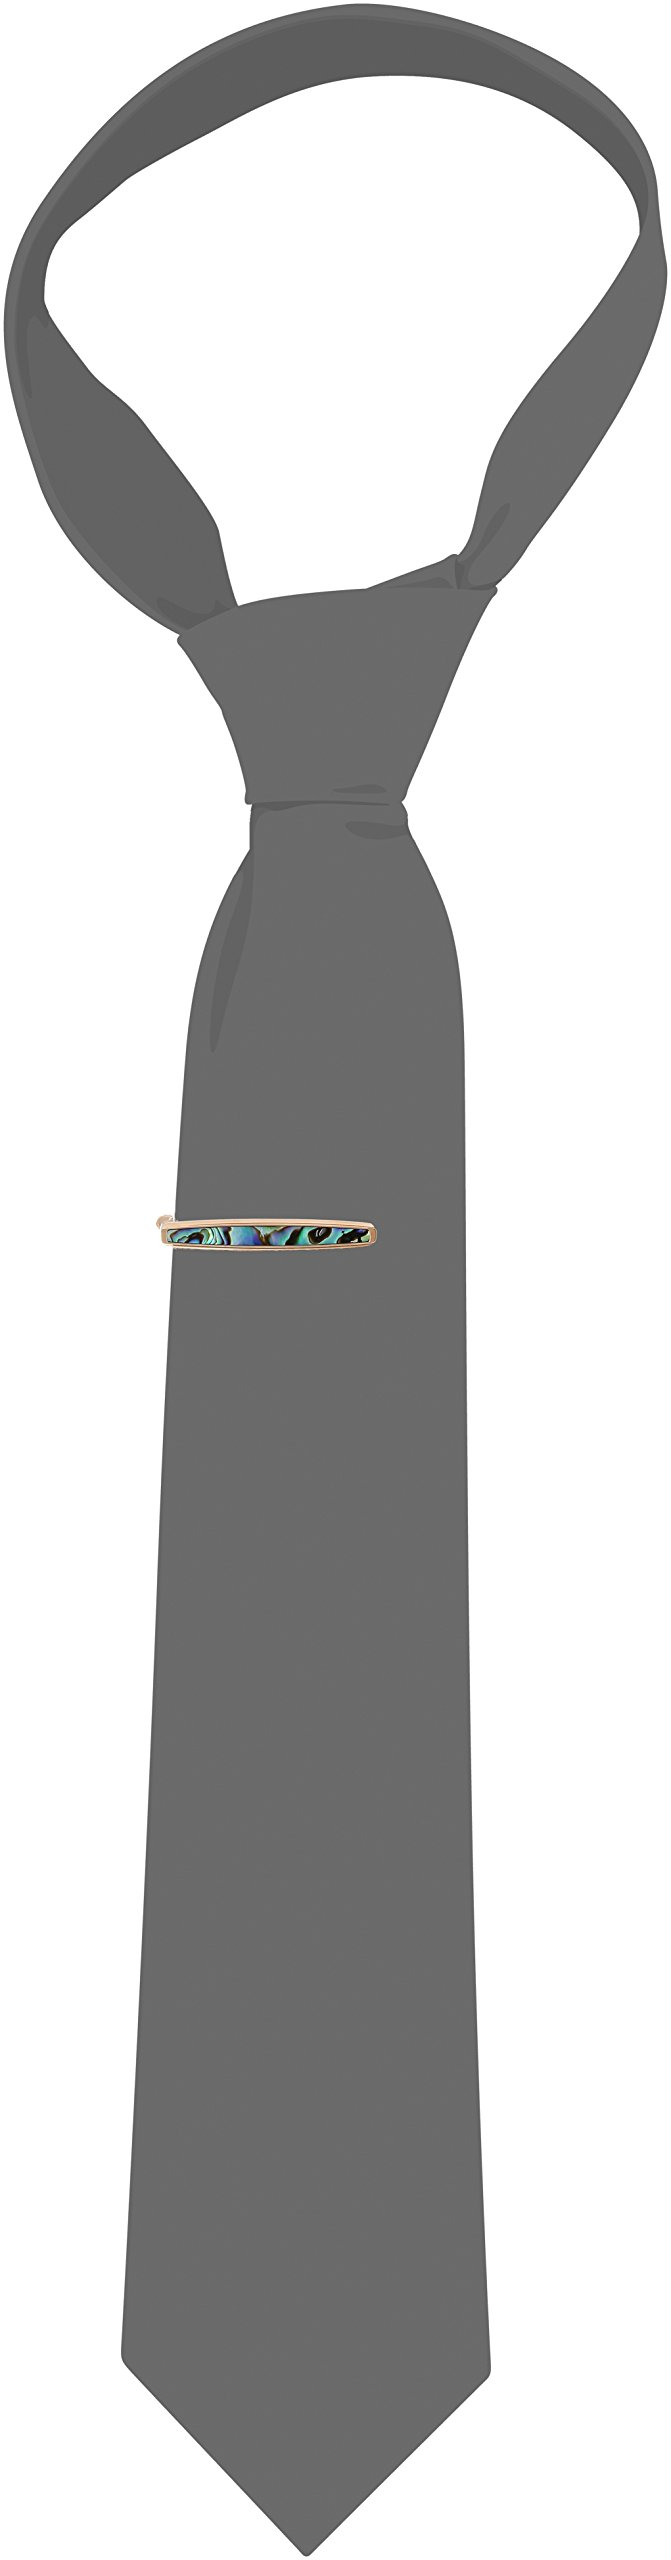 Men's Stainless Steel Rose Ion Bar with Abalone Inlay Tie Clip by Amazon Collection (Image #2)